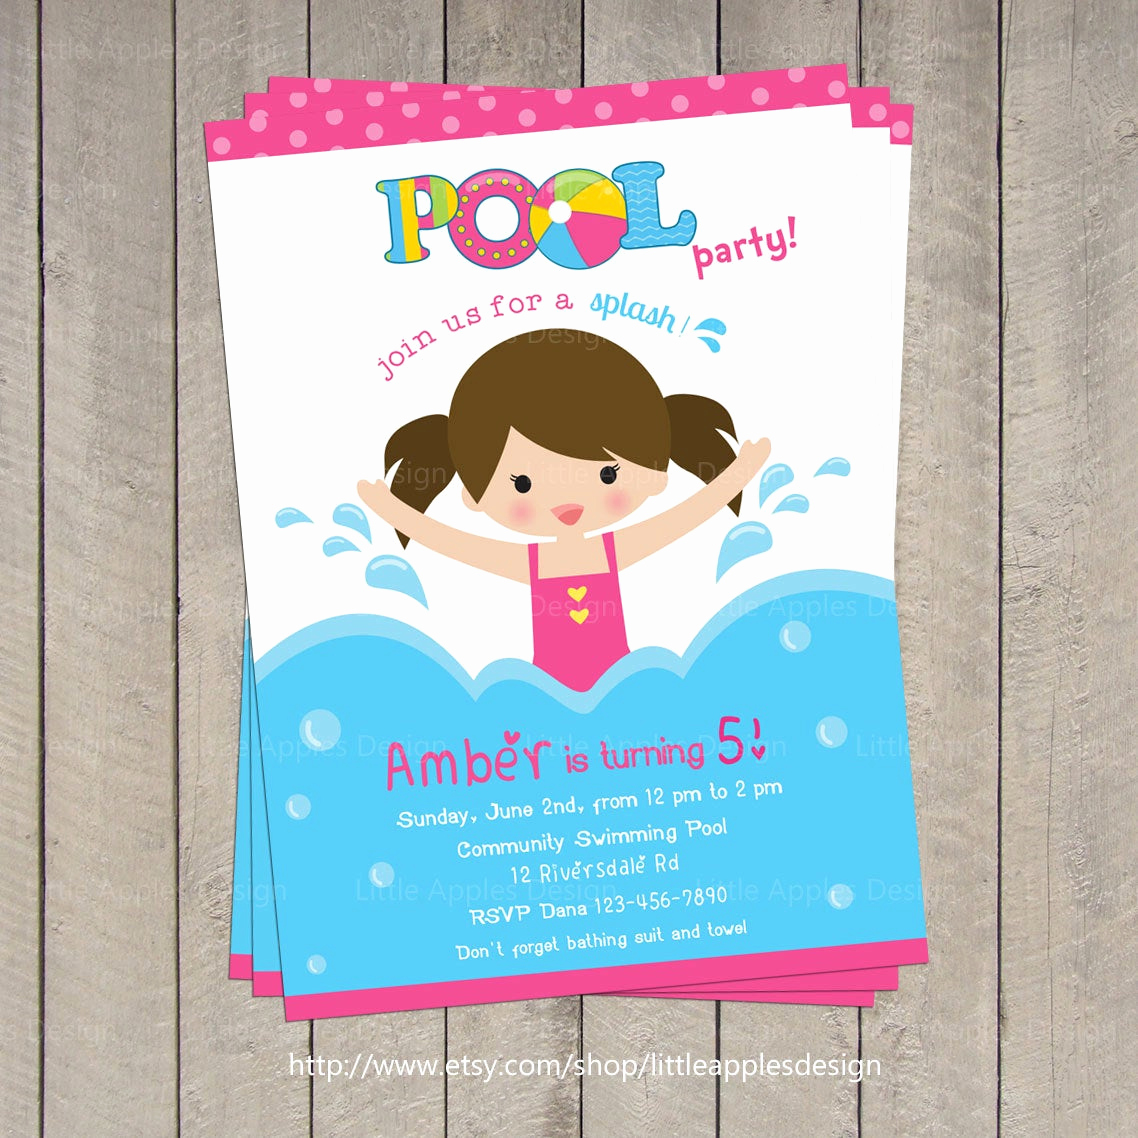 Kids Pool Party Invitation Best Of Pool Invitation Pool Party Invitation Kids Pool Party